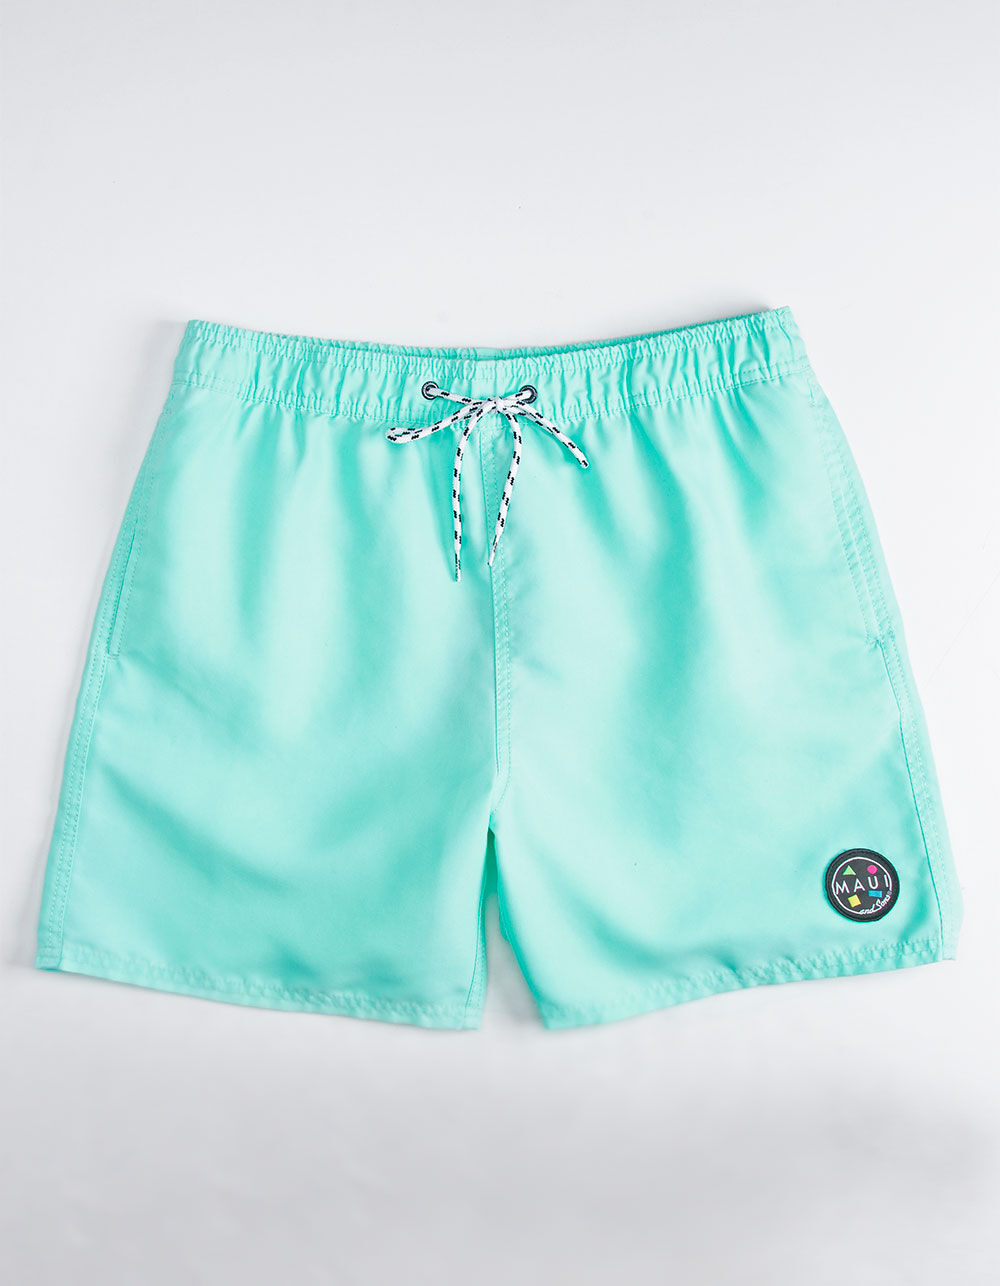 MAUI AND SONS Party On Mint Volley Shorts